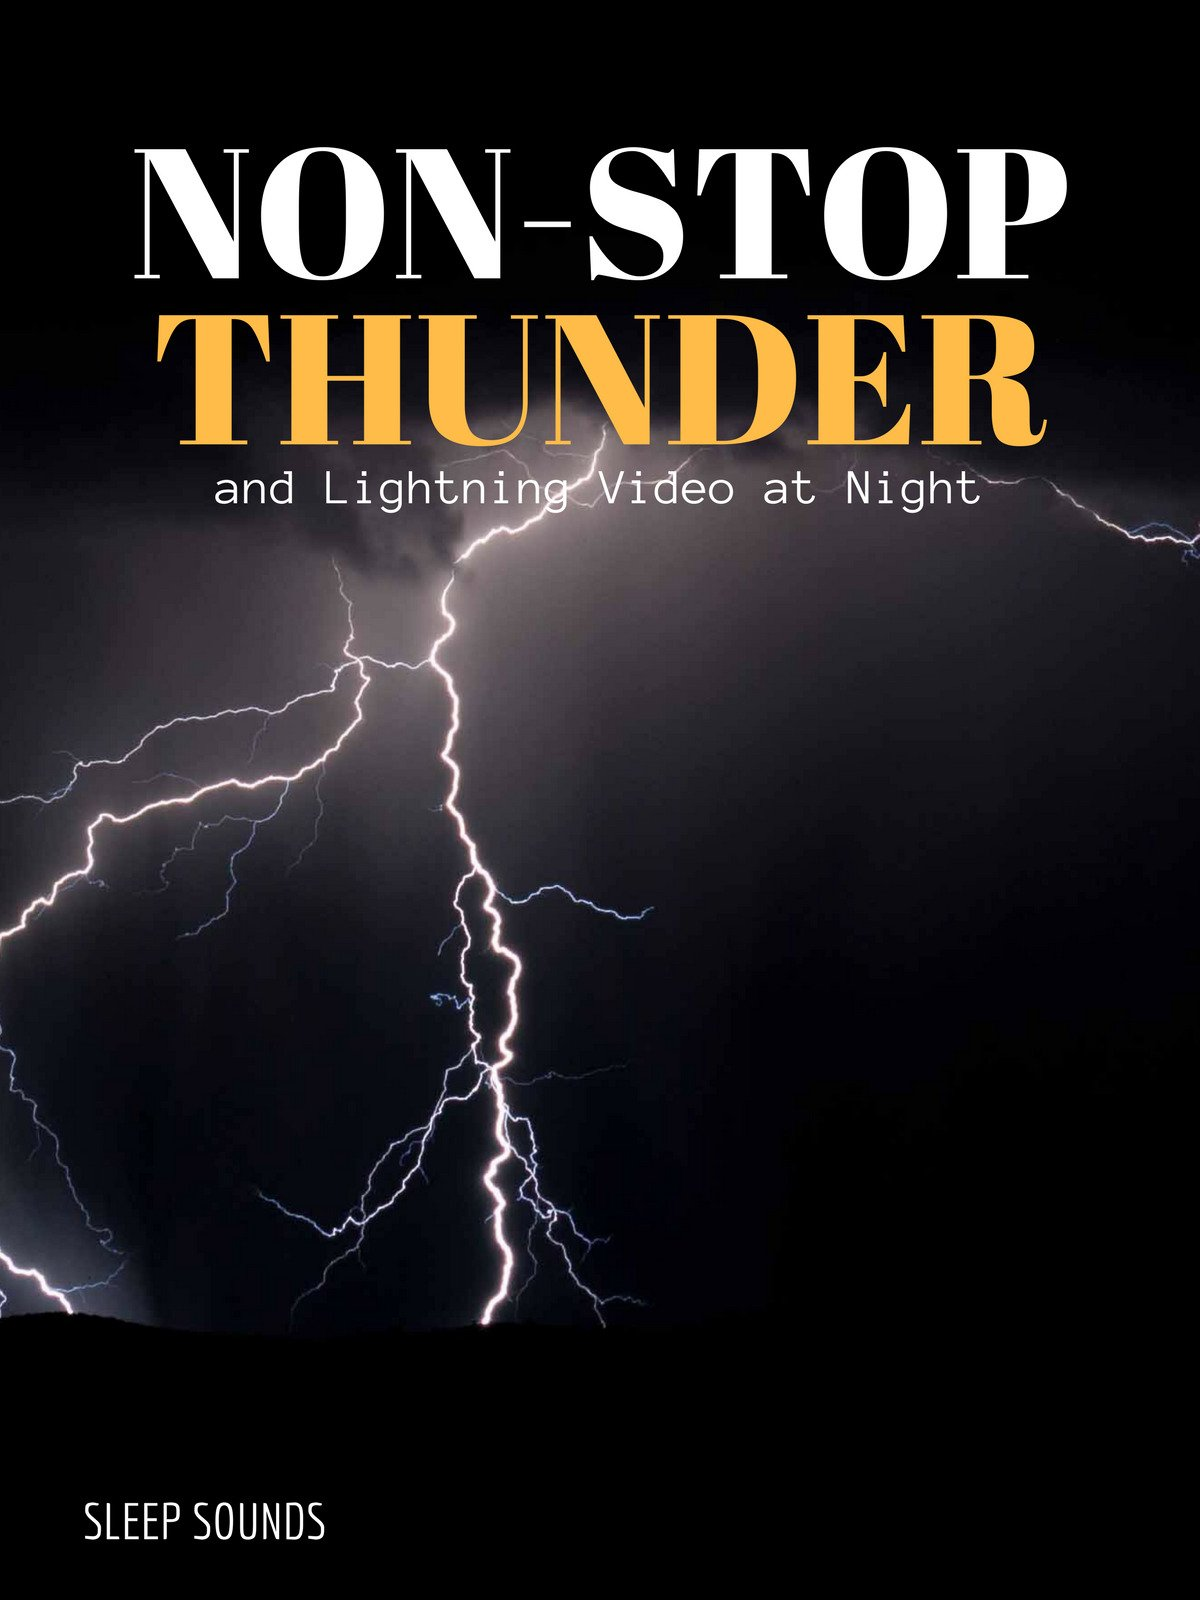 Watch 'Non-stop Thunder and Lightning Video at Night' on